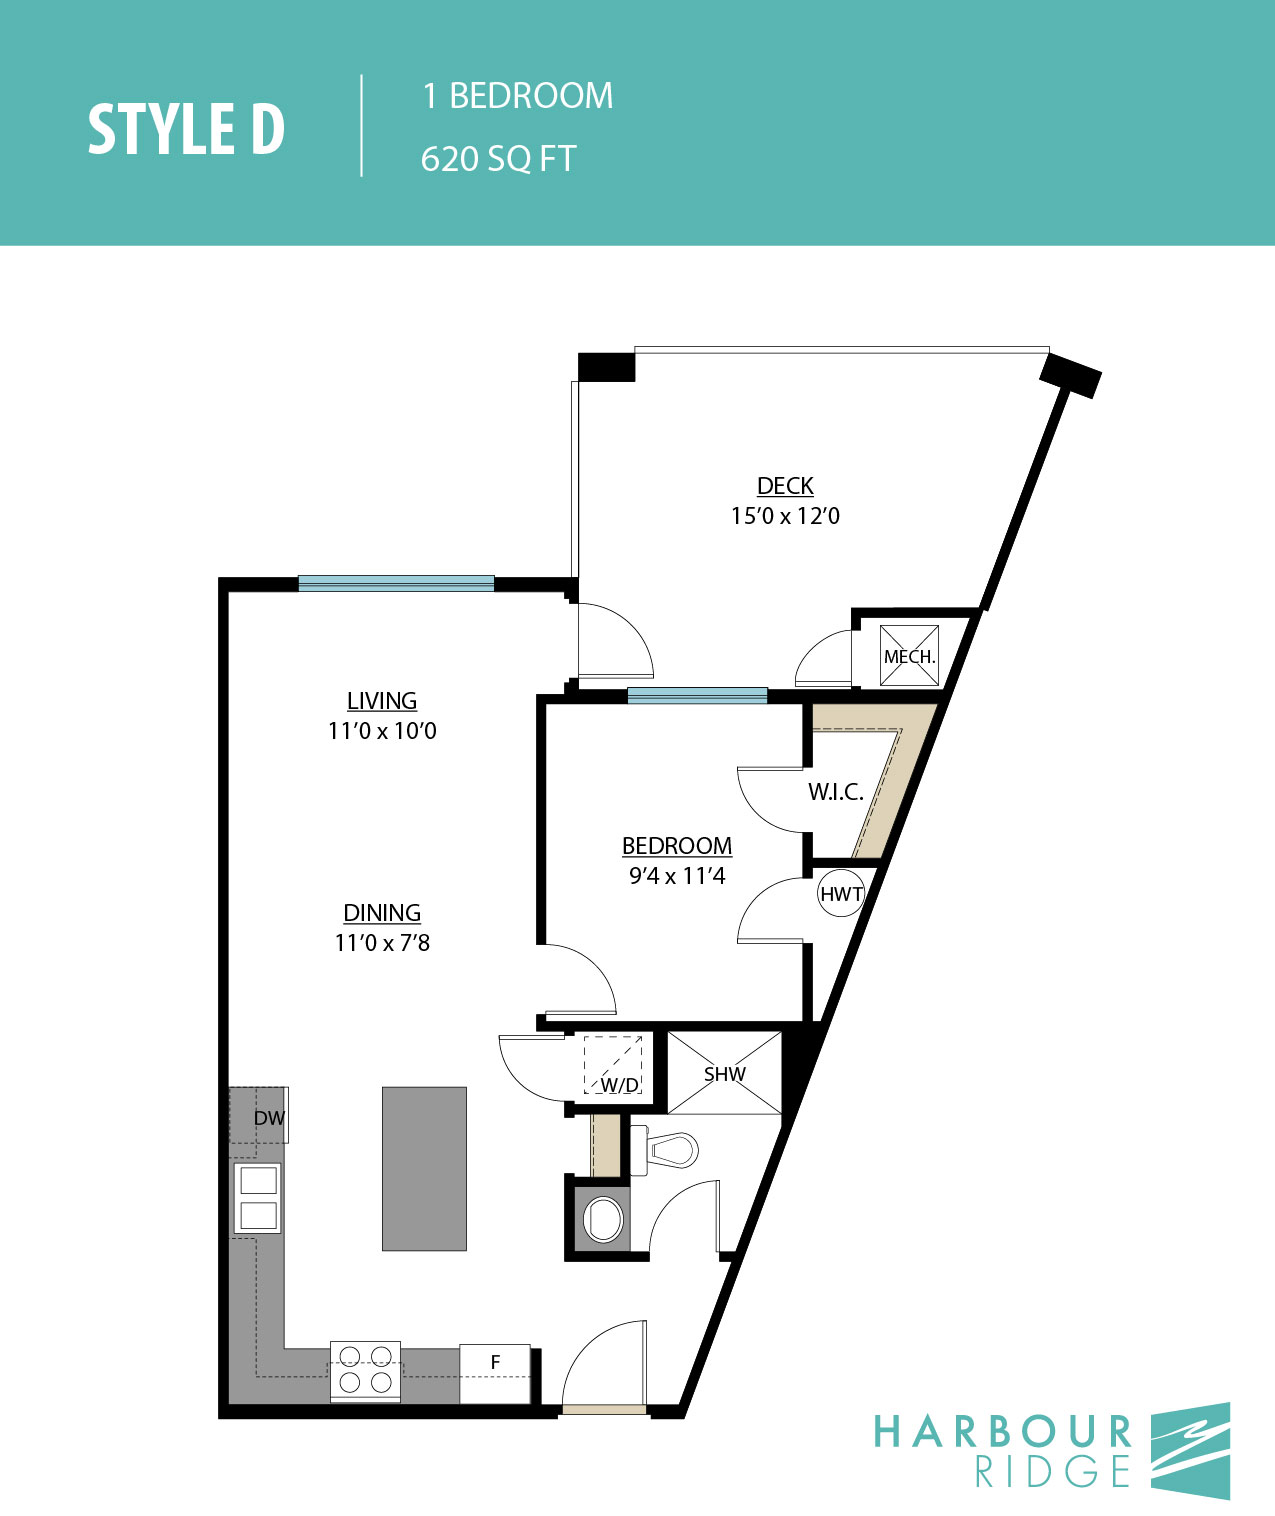 Style D | 1 Bedroom | 620 Sq. Ft.